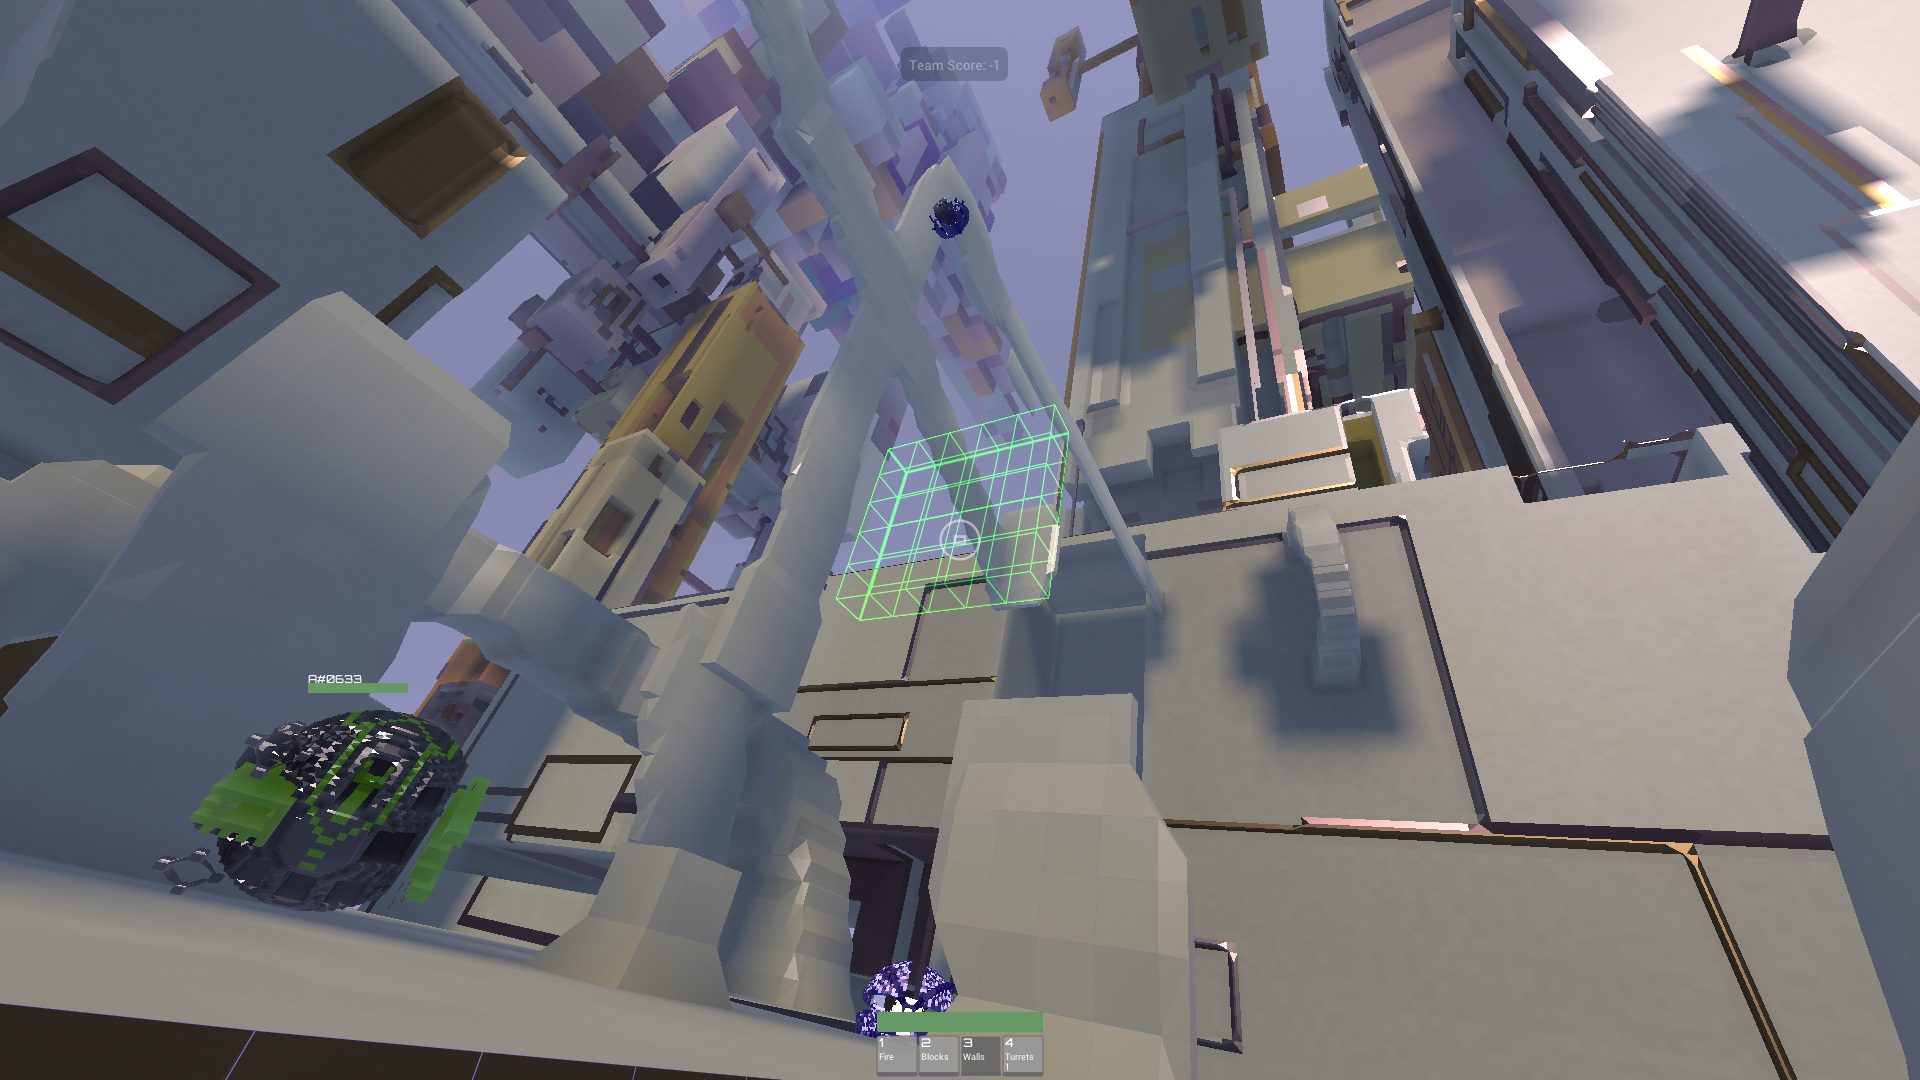 Avoyd in-game screenshot - In-game building: adding ceramic walls and arches to the procedurally generated environment. The building cursor is the green wireframe in the centre of the screen. The player (metal and green spherical avatar) deployed turrets (blue).